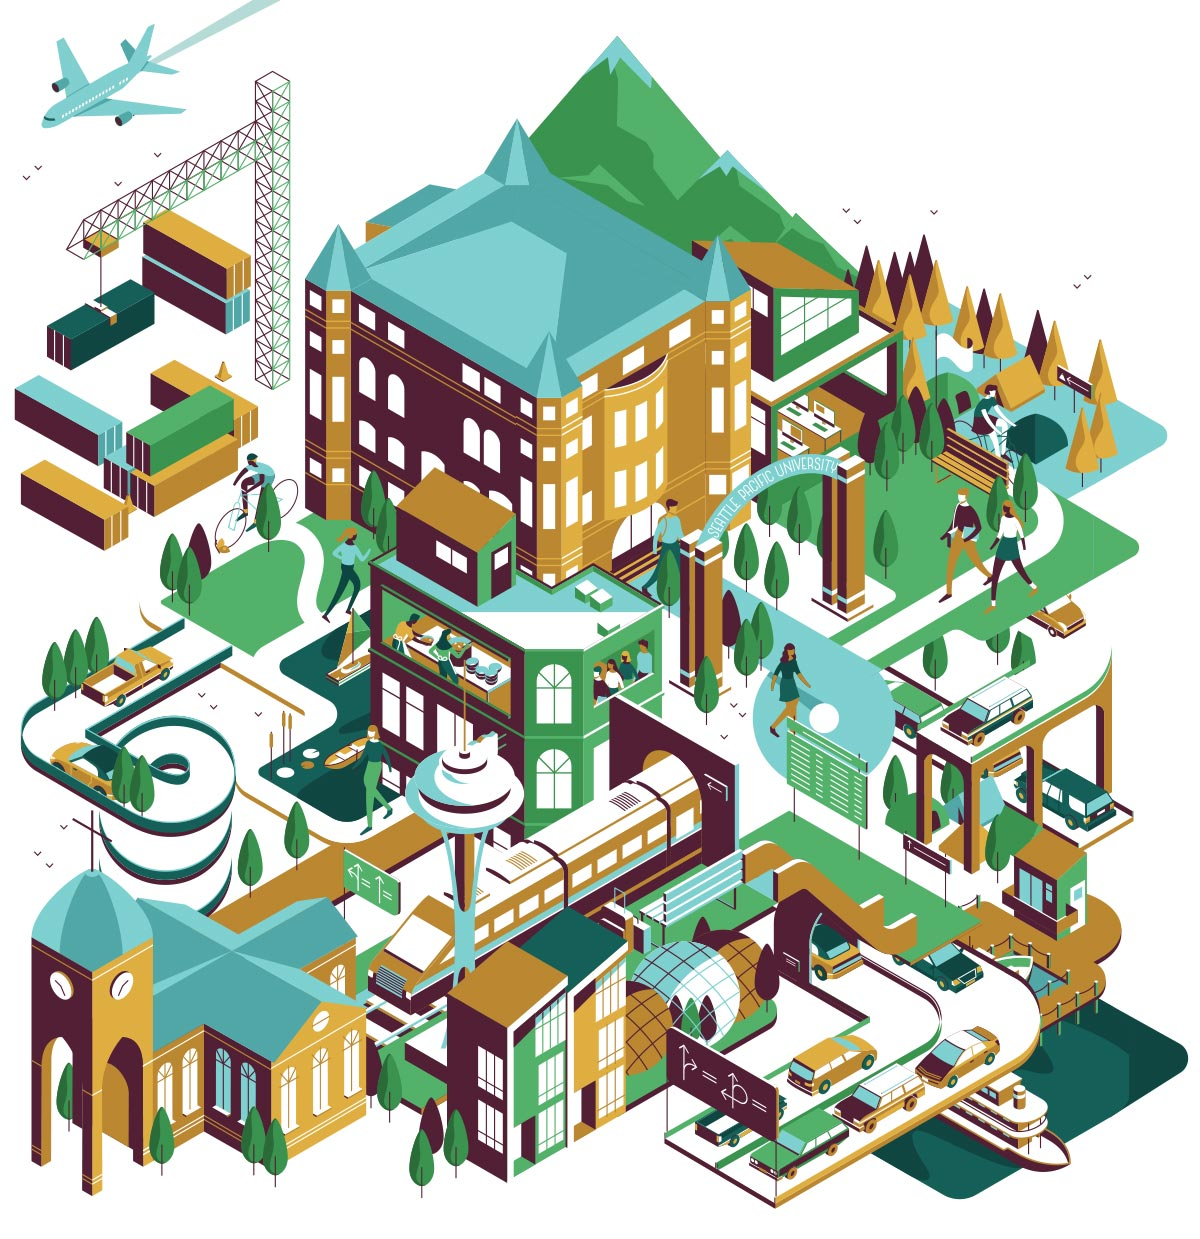 This illustration shows a stylized image of Seattle, including a representation of Alexander Hall, Mount Rainier, airplanes, the space needle, a church, and other things seen around Seattle.